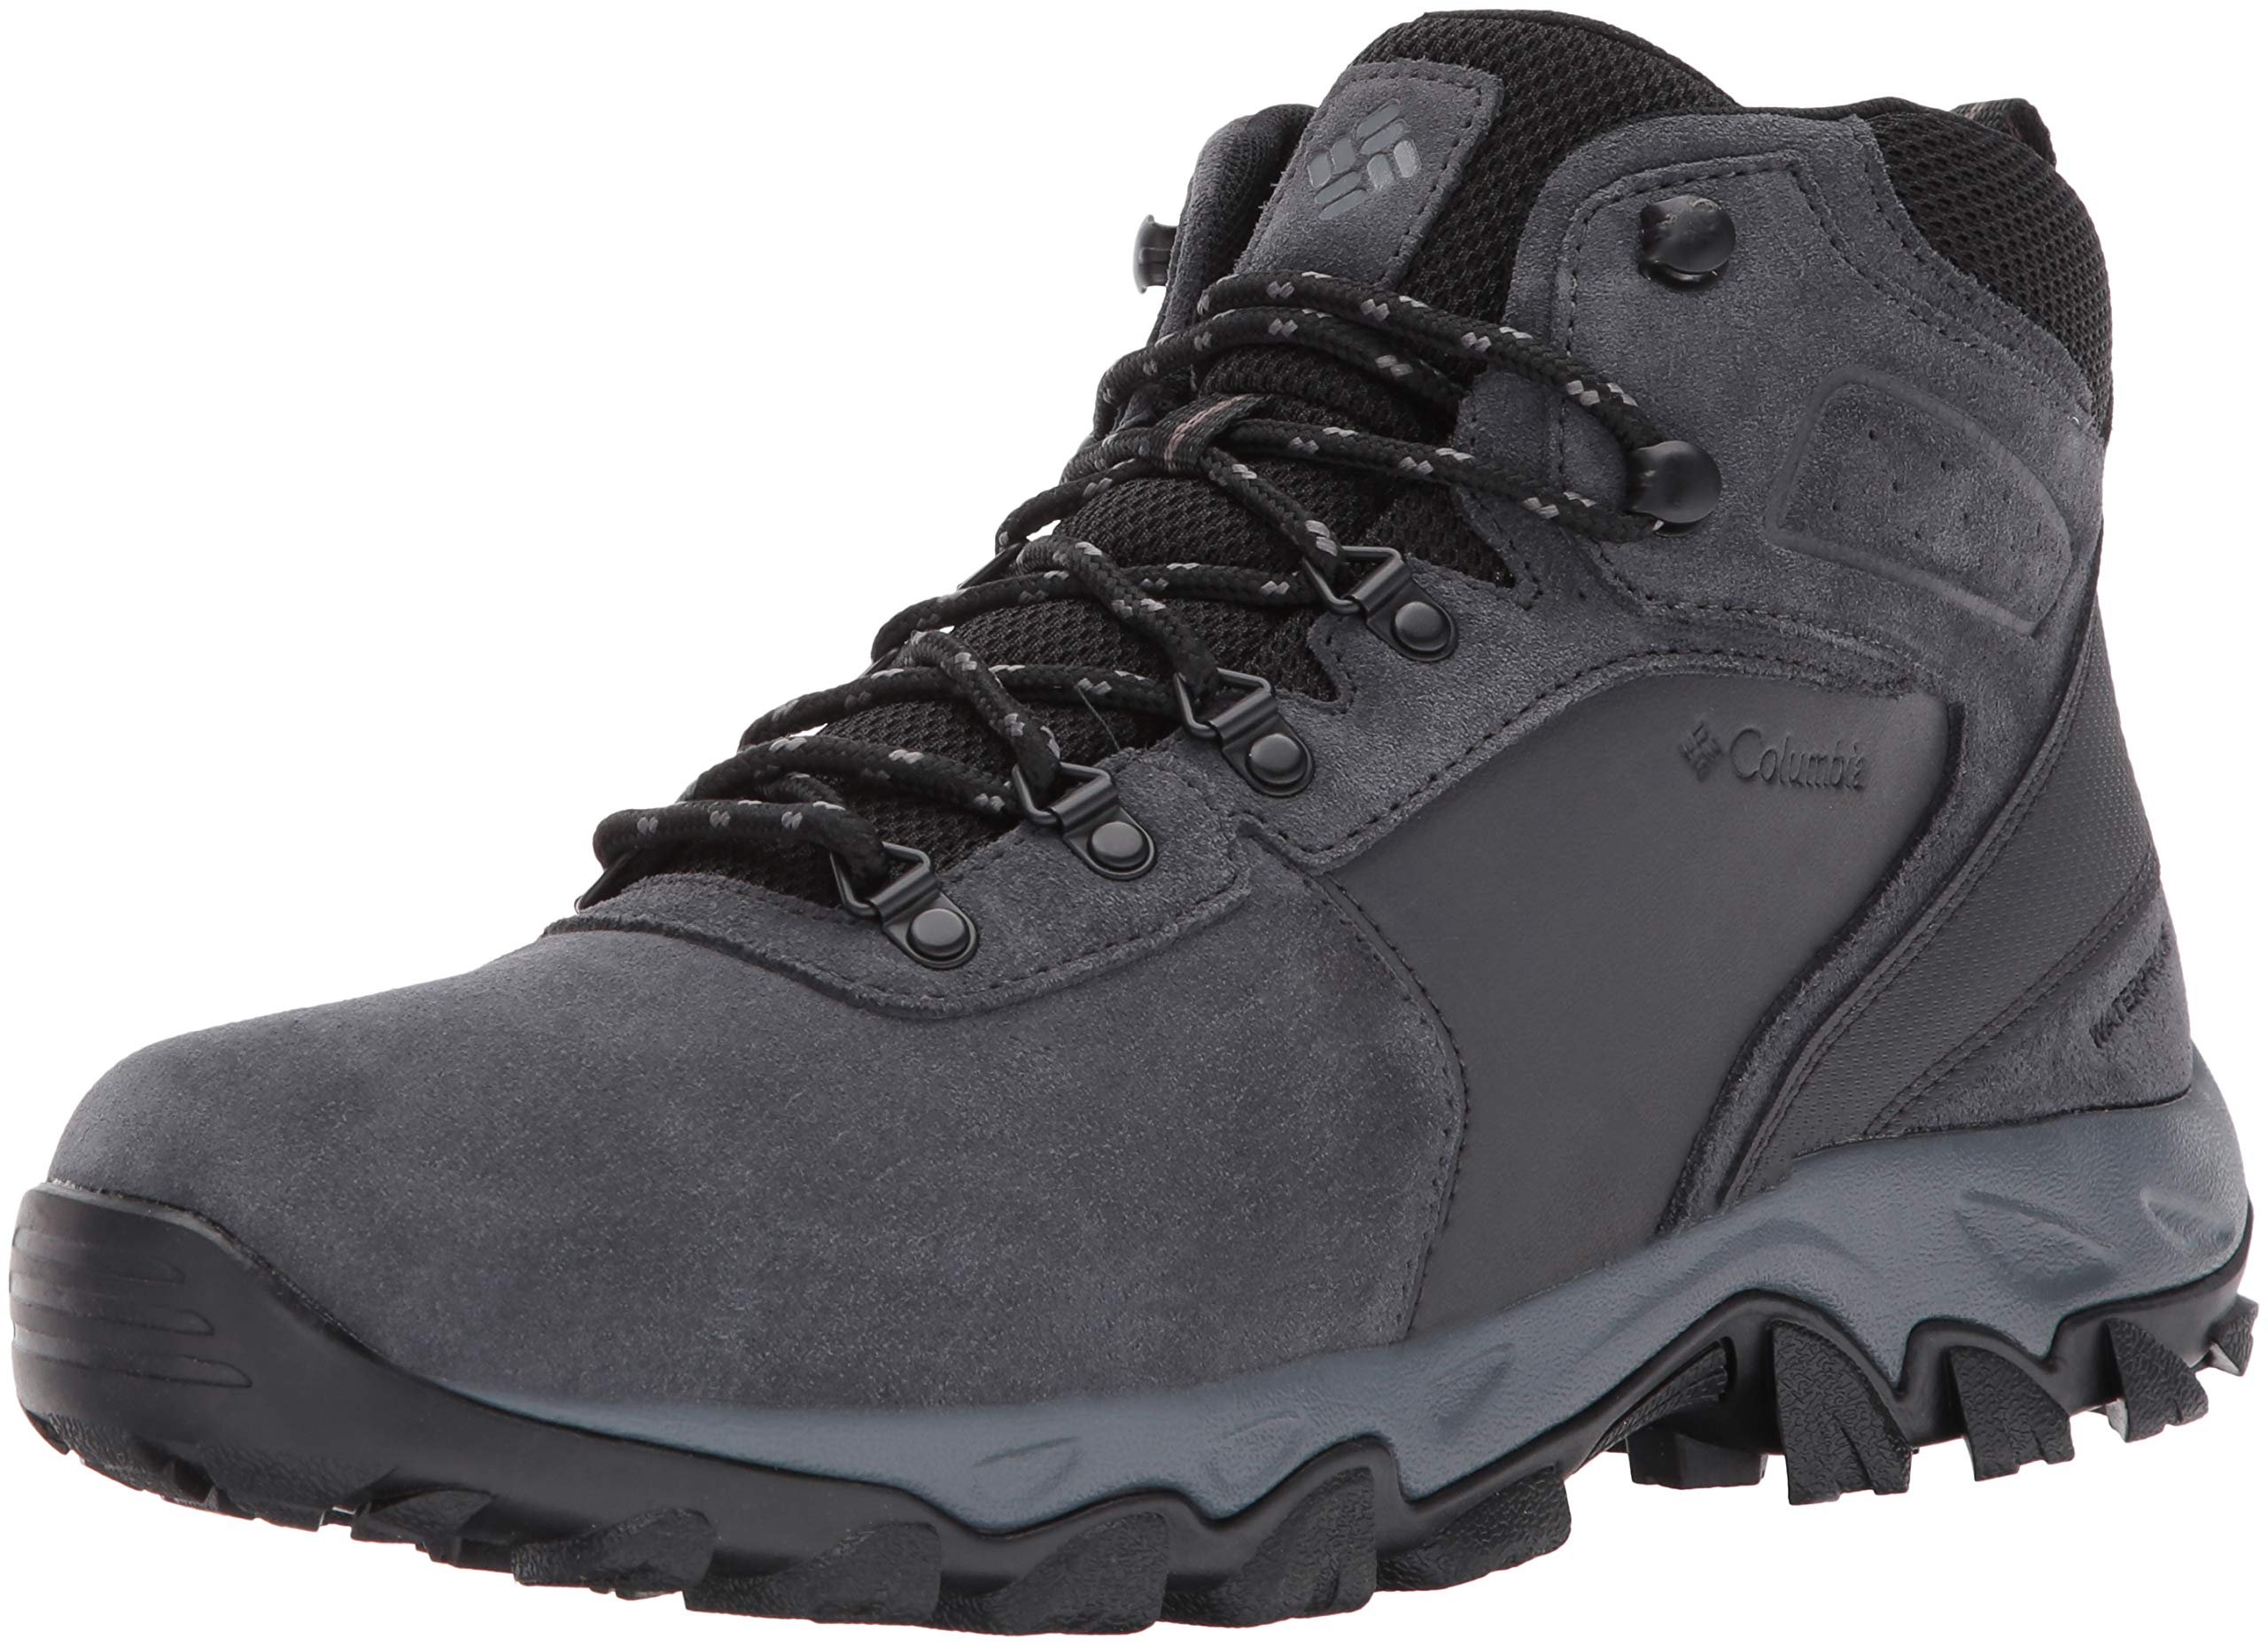 Columbia Men's Newton Ridge Plus II Suede Waterproof Boot Wide, Breathable High-Traction Grip shark, black 7 US